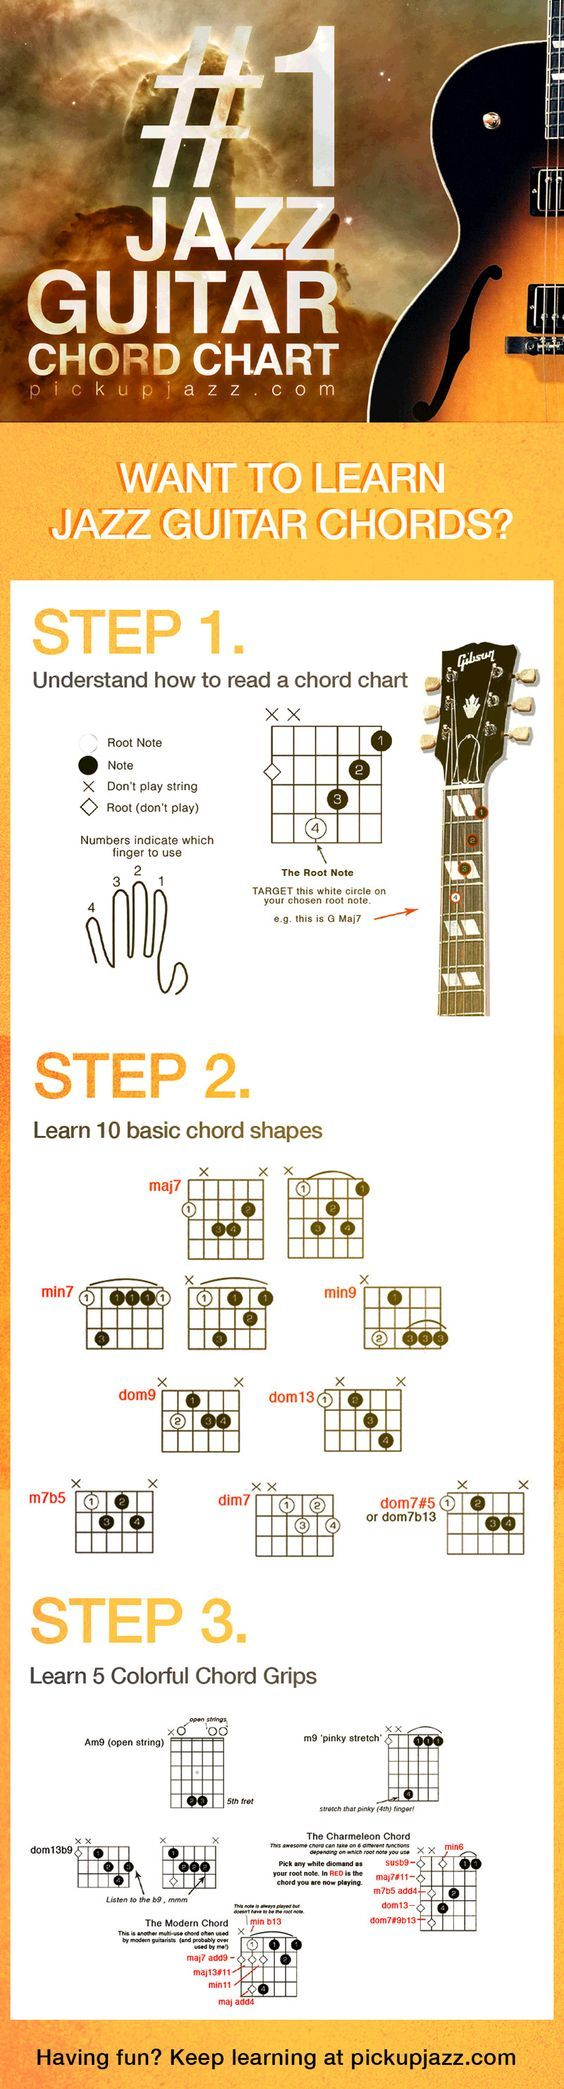 15 Best Scales Images On Pinterest Sheet Music Guitar Chords And Howtoreadchorddiagramschartjpg Jazz Chord Chart From Pickupjazz Jazzguitar